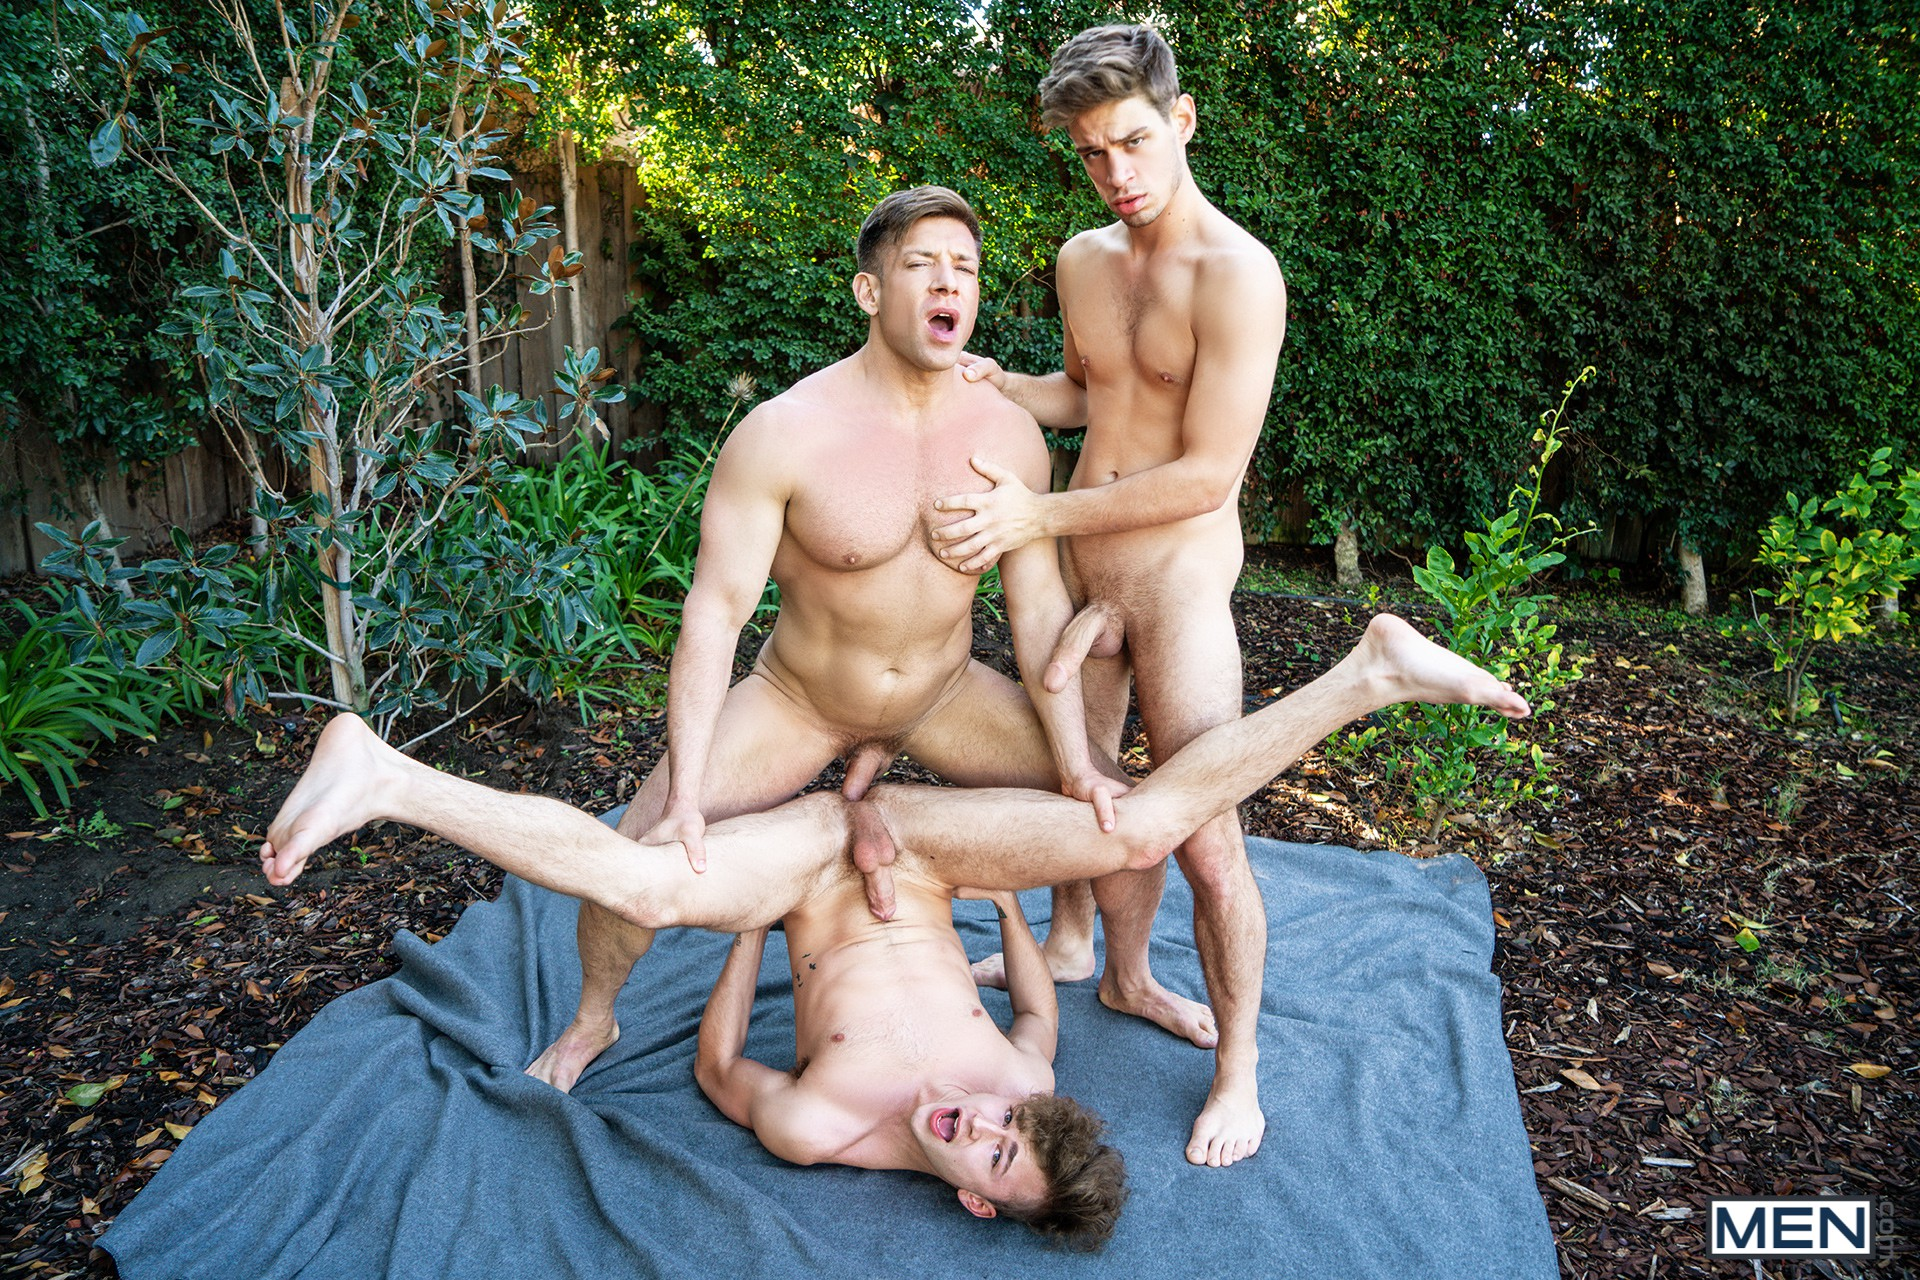 Gay men having a threesome outdoors